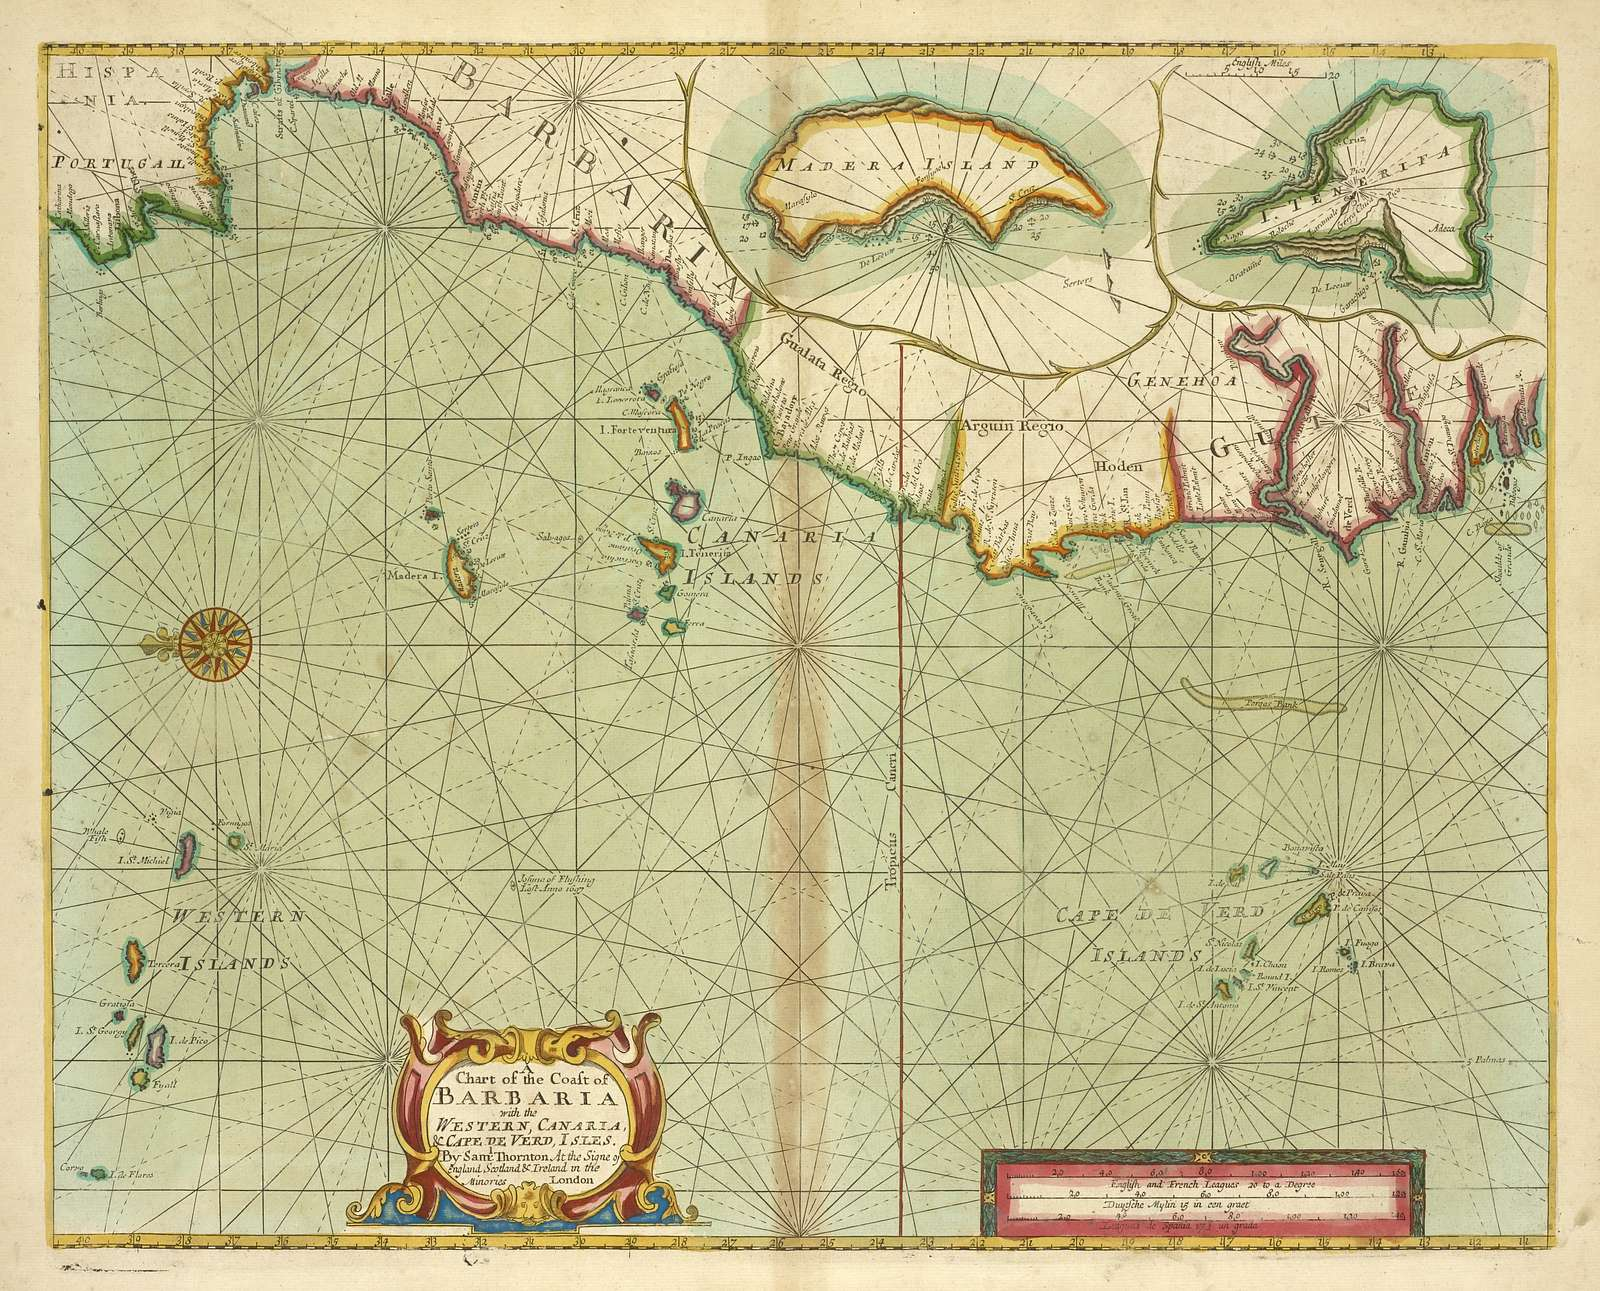 A chart of the coast of BARBARIA with the Western, Canaria and Cape de Verd, Isles